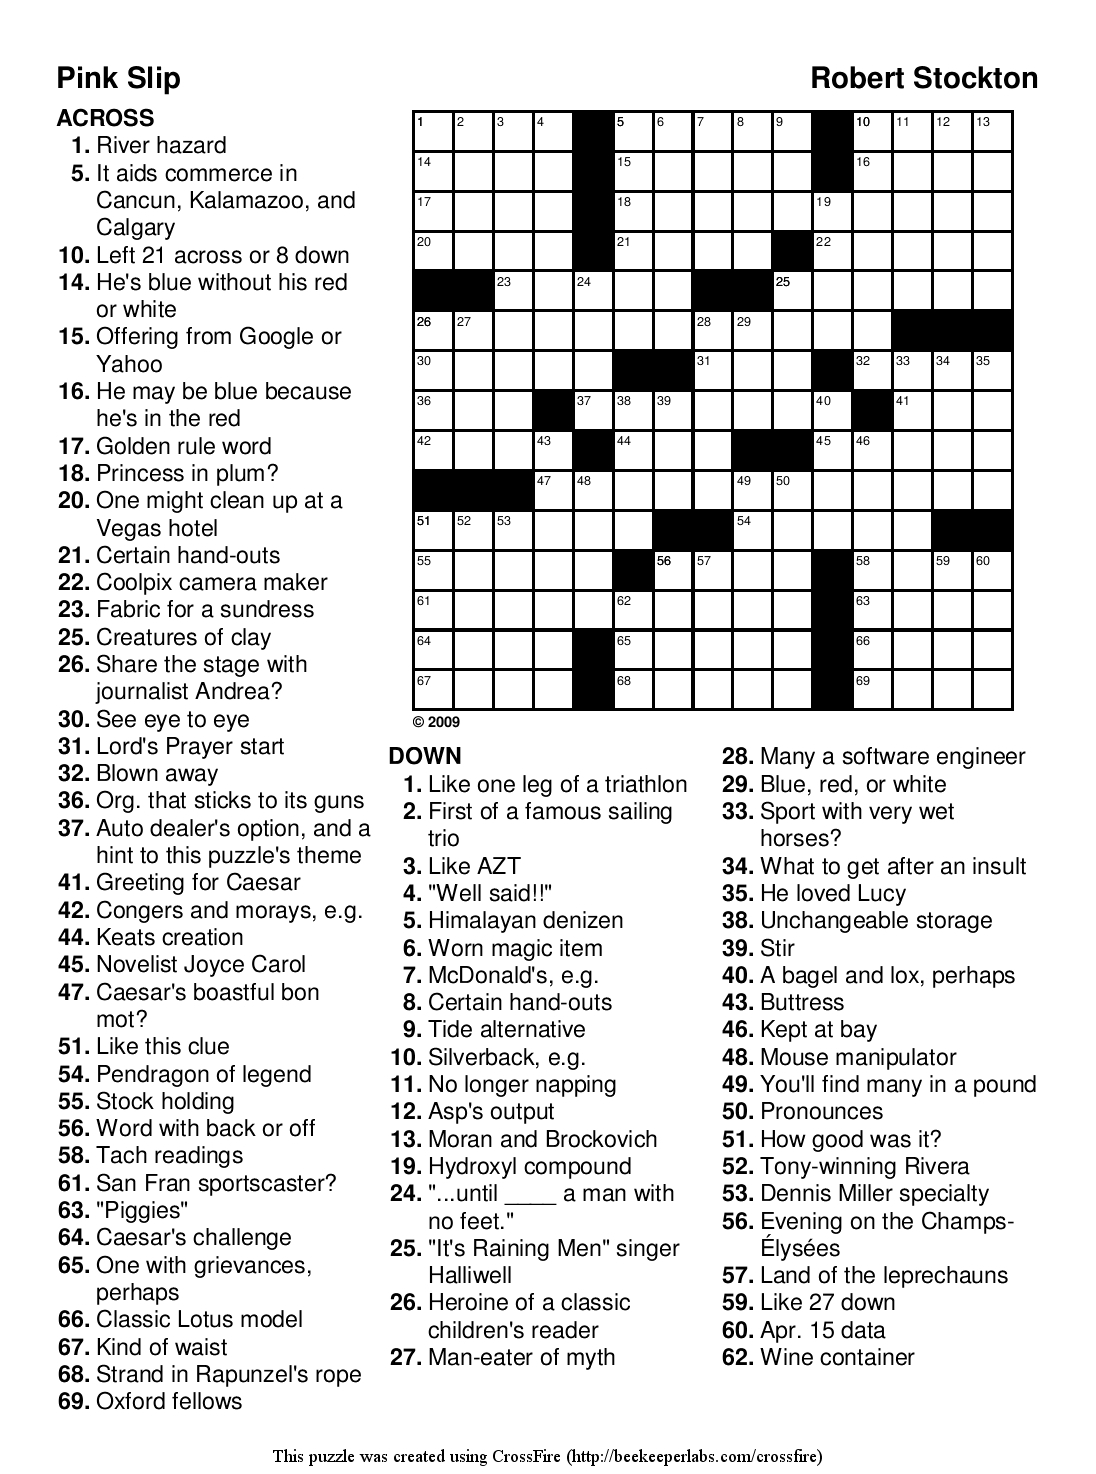 Free Printable Sports Crossword Puzzles | Free Printables - Free Printable Sports Crossword Puzzles